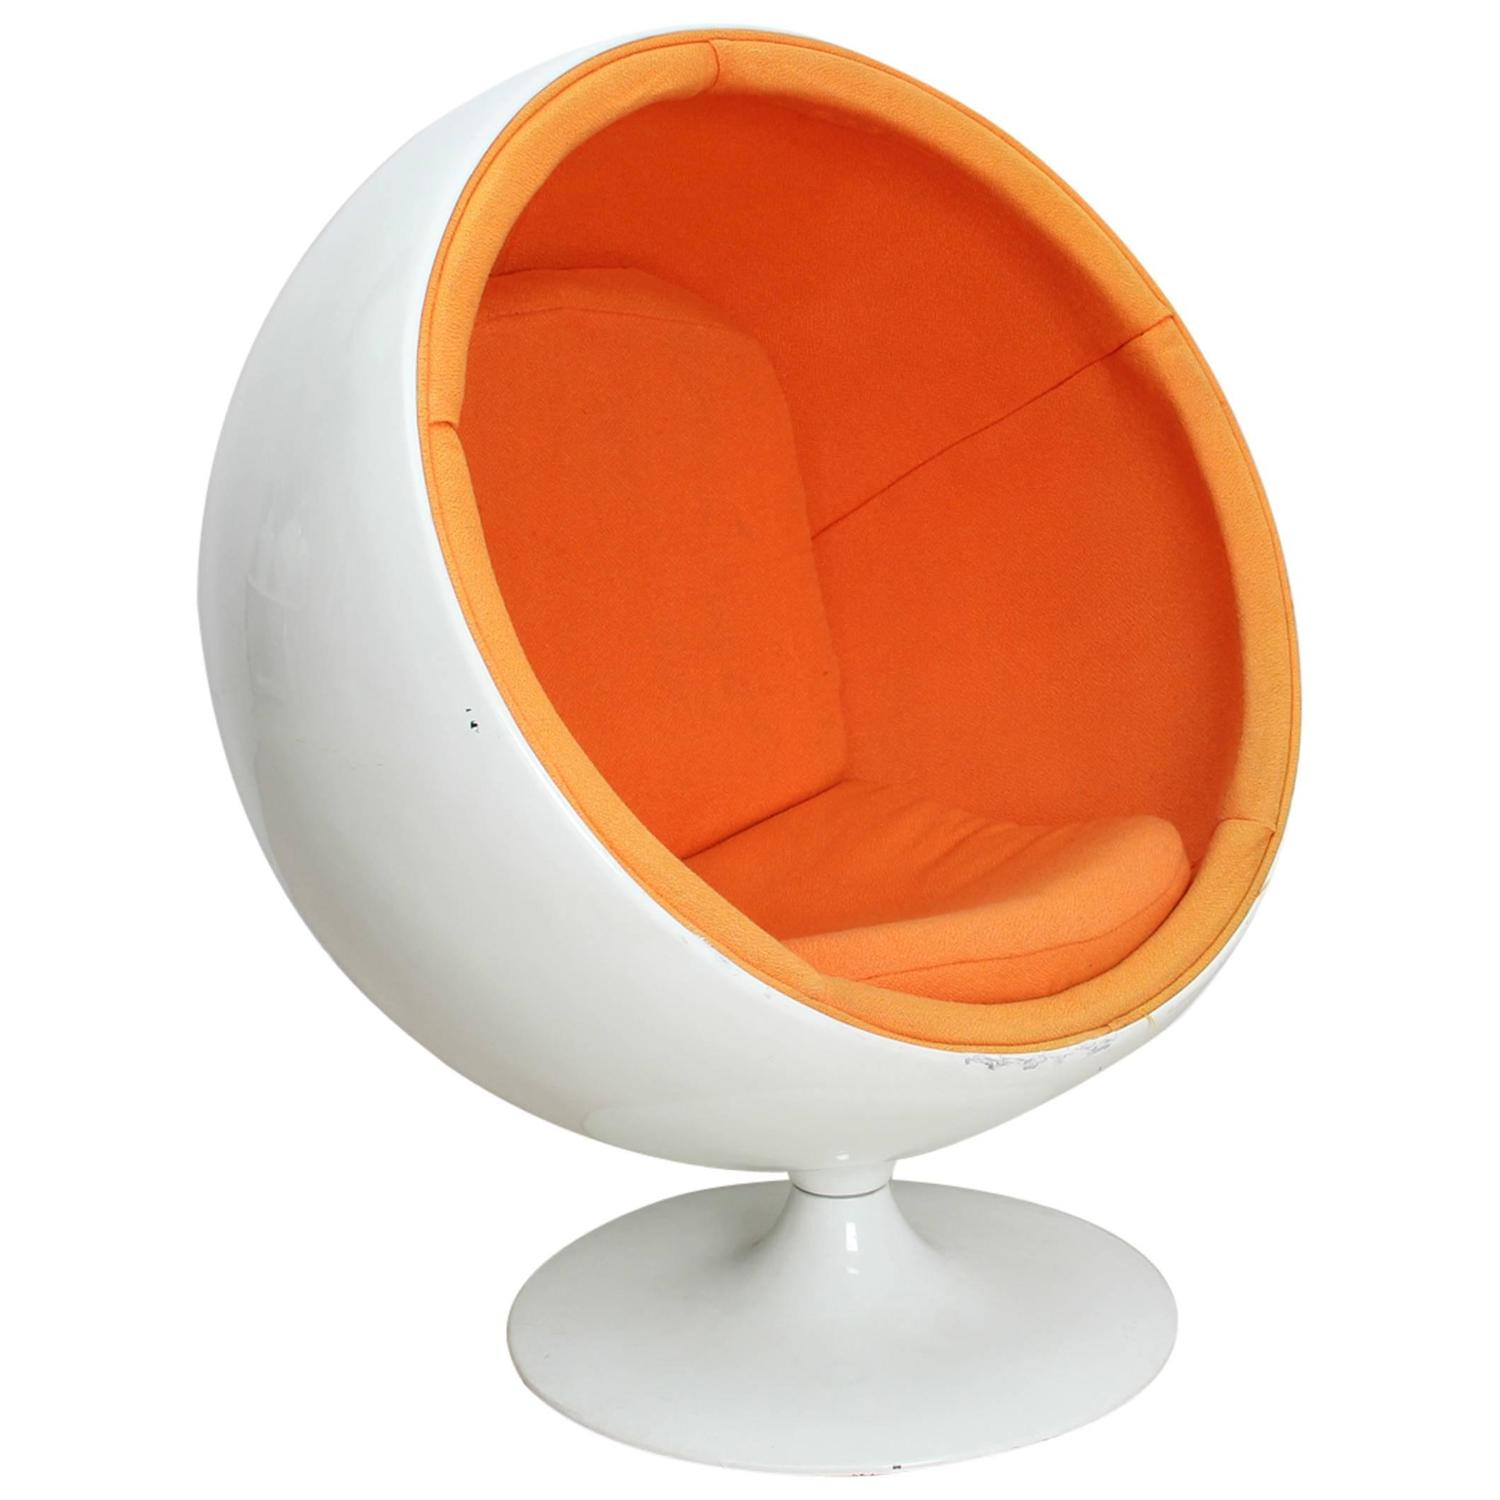 ball chair for kids by eero aarnio ed adelta 1963 for. Black Bedroom Furniture Sets. Home Design Ideas